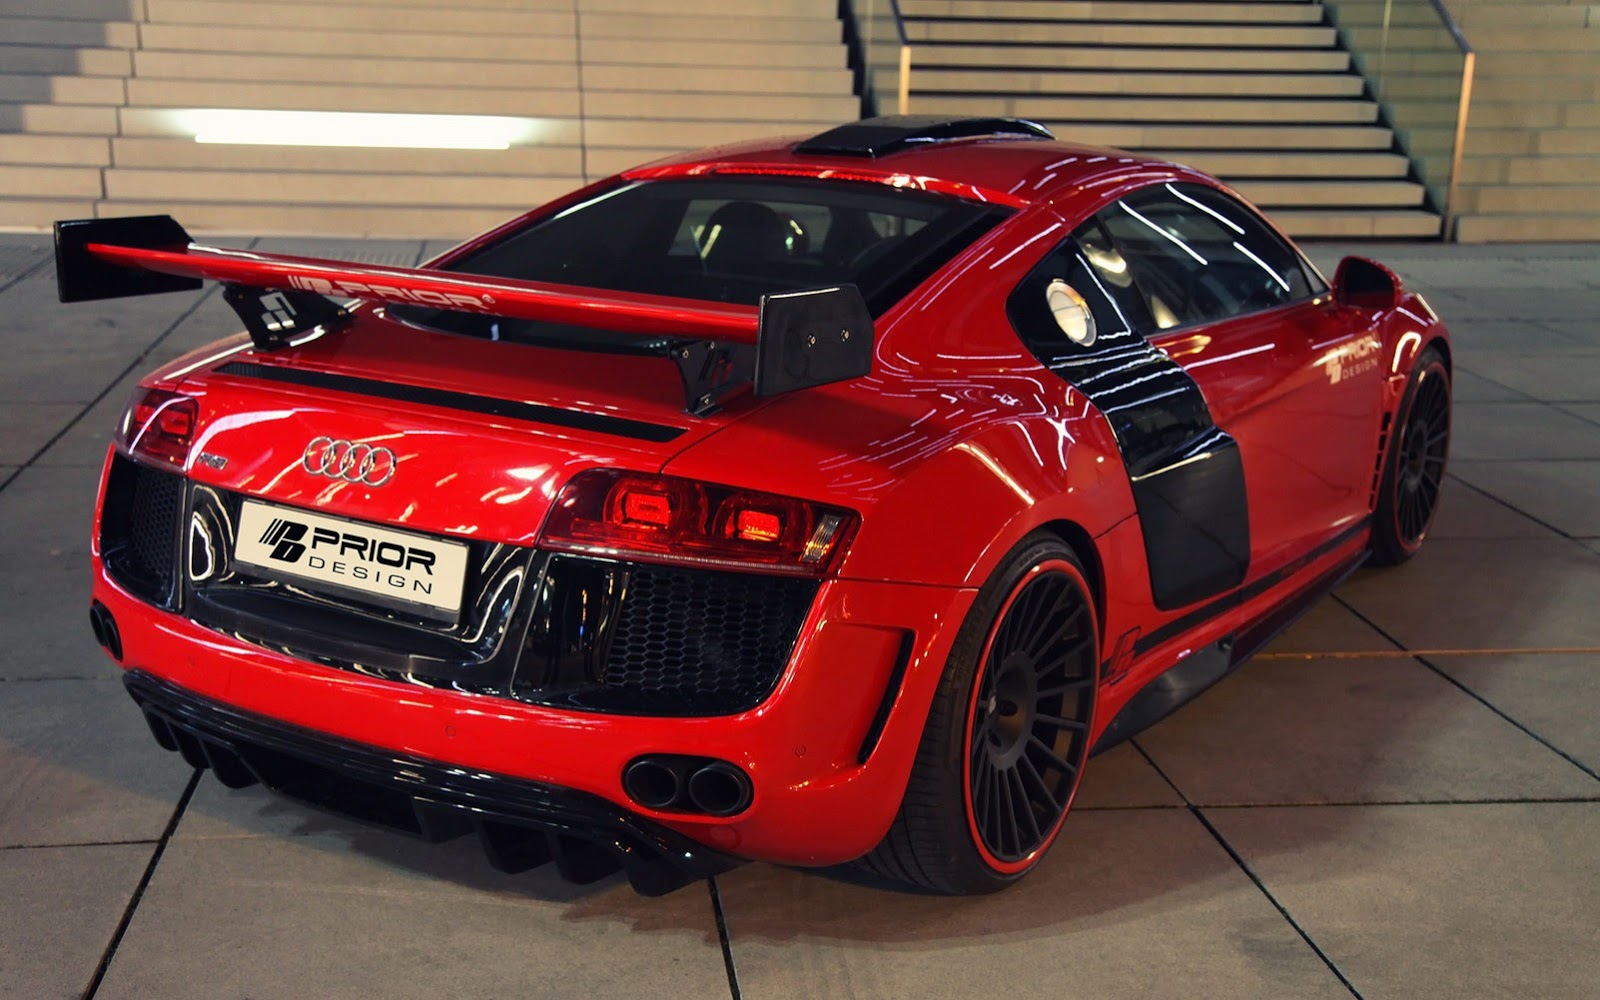 audi r8 gt650 by prior design 12 audi tuning mag. Black Bedroom Furniture Sets. Home Design Ideas